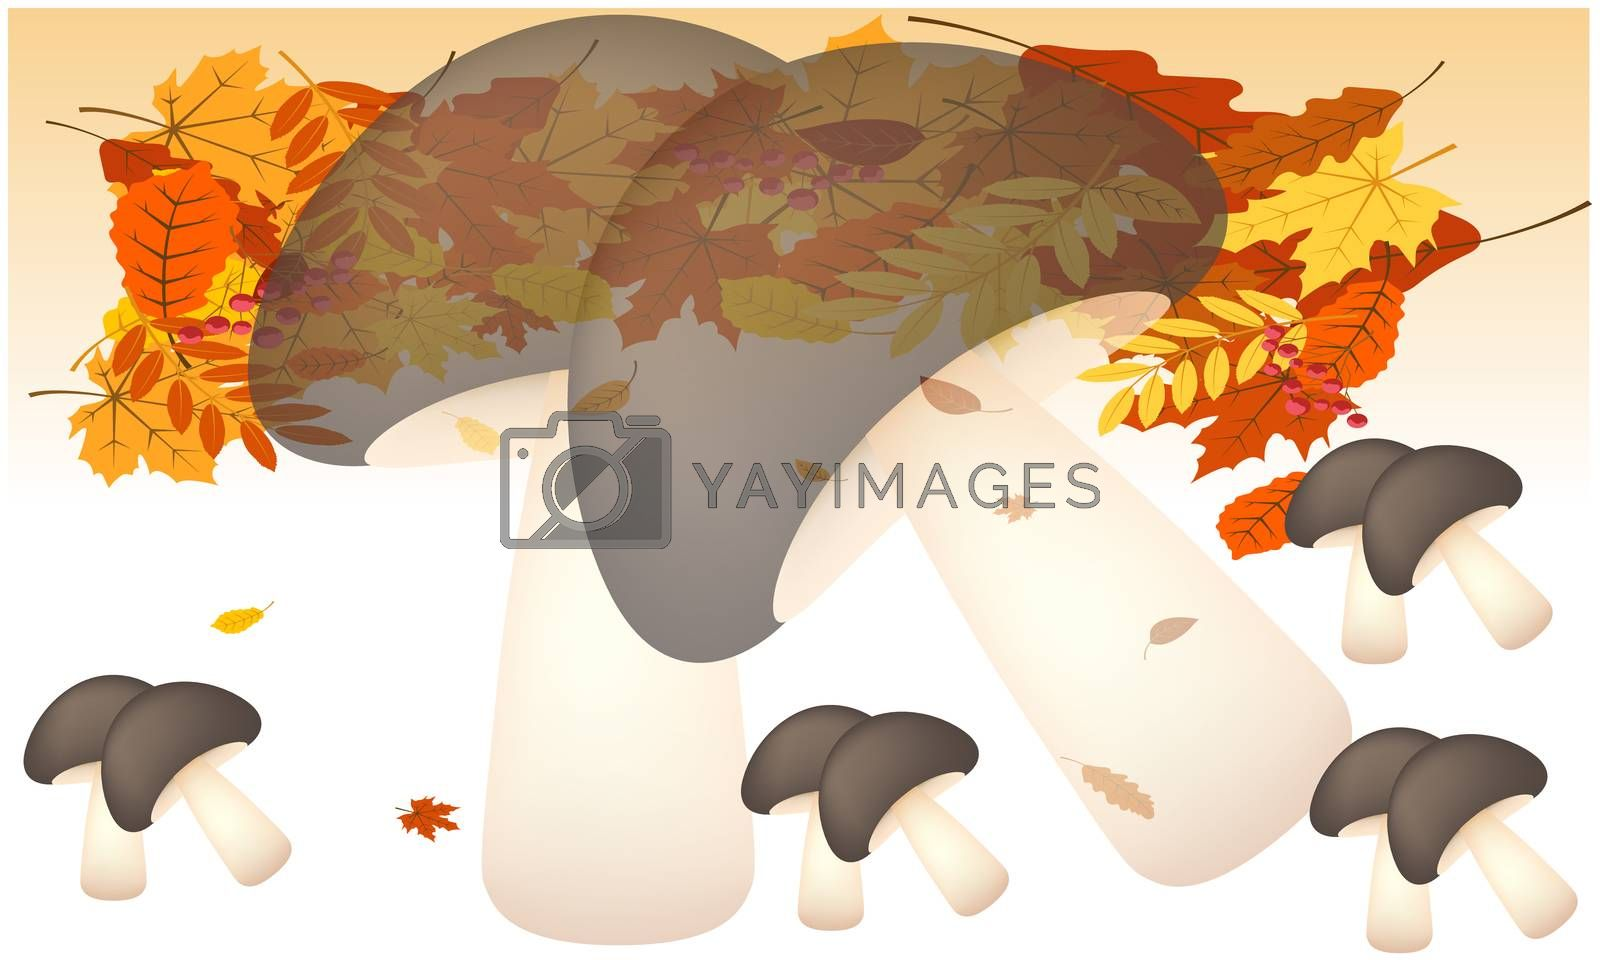 digital textile design of leaves and vegetables on abstract background